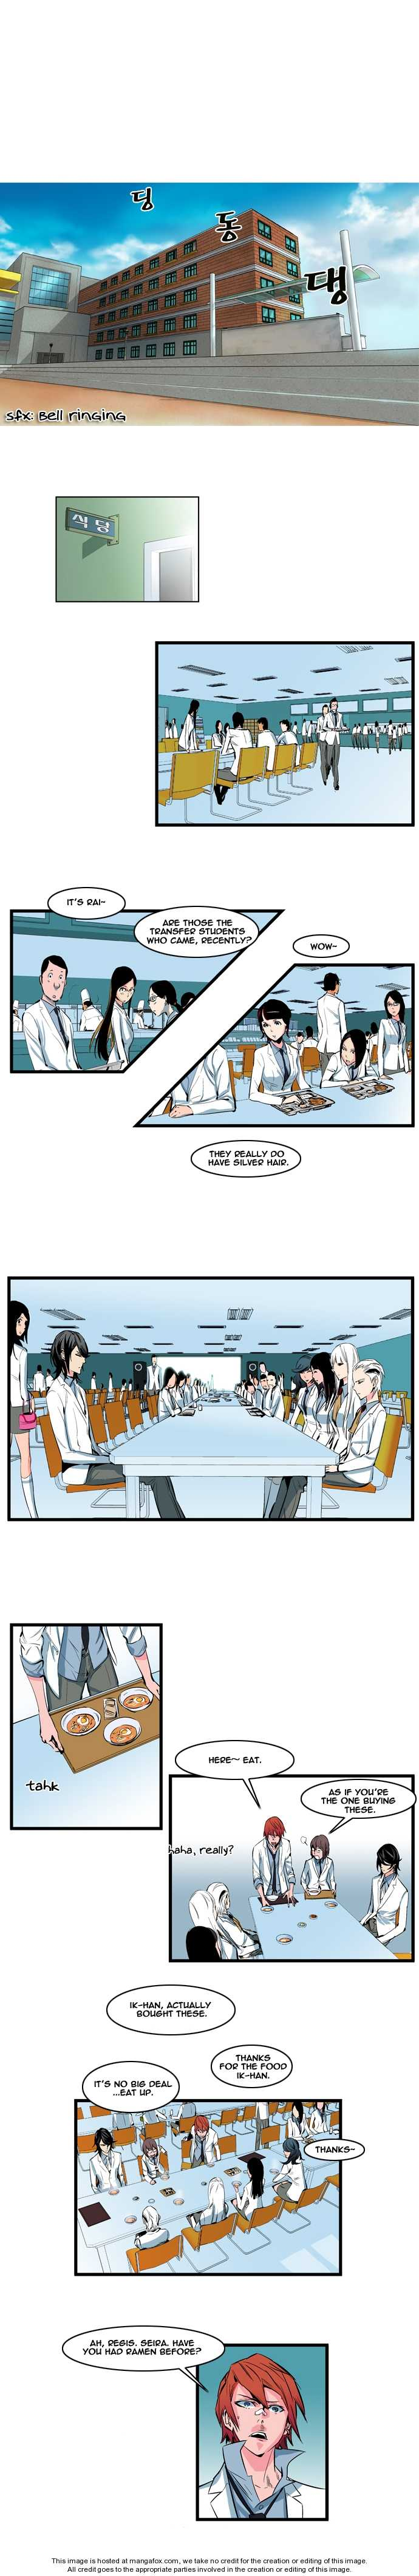 Noblesse 104 Page 3